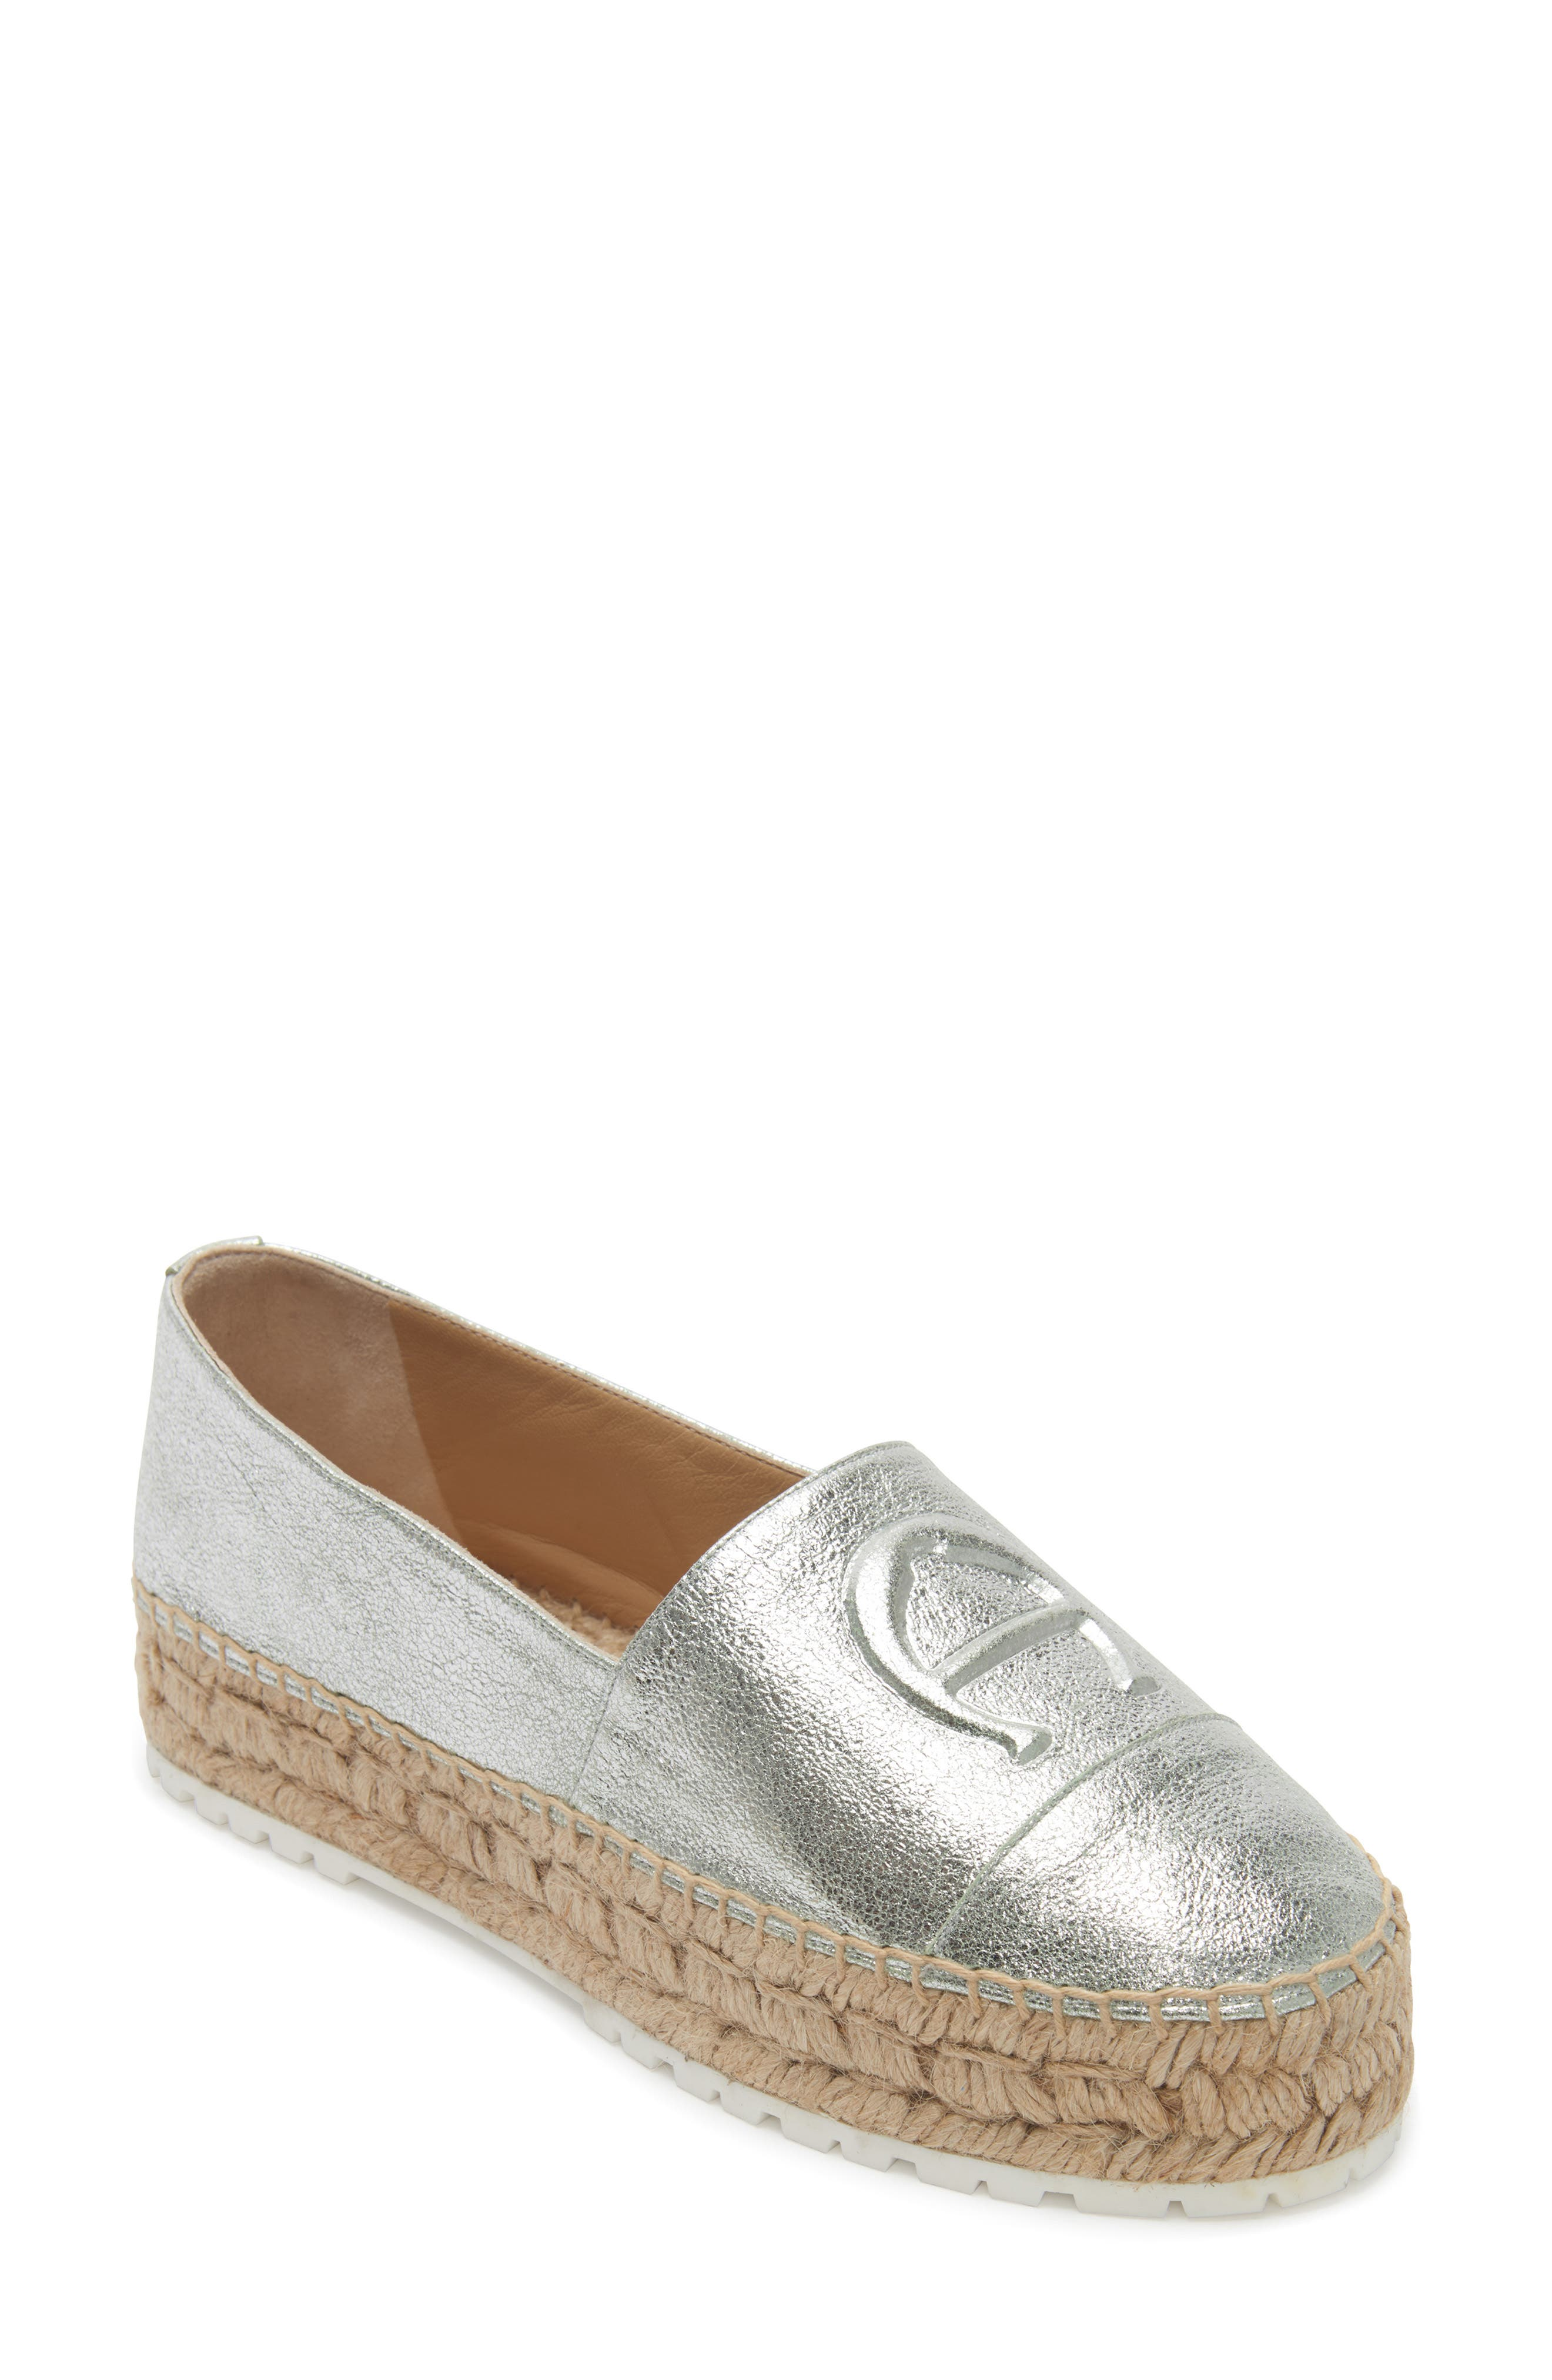 Wade Platform Espadrille,                             Main thumbnail 1, color,                             SILVER LEATHER